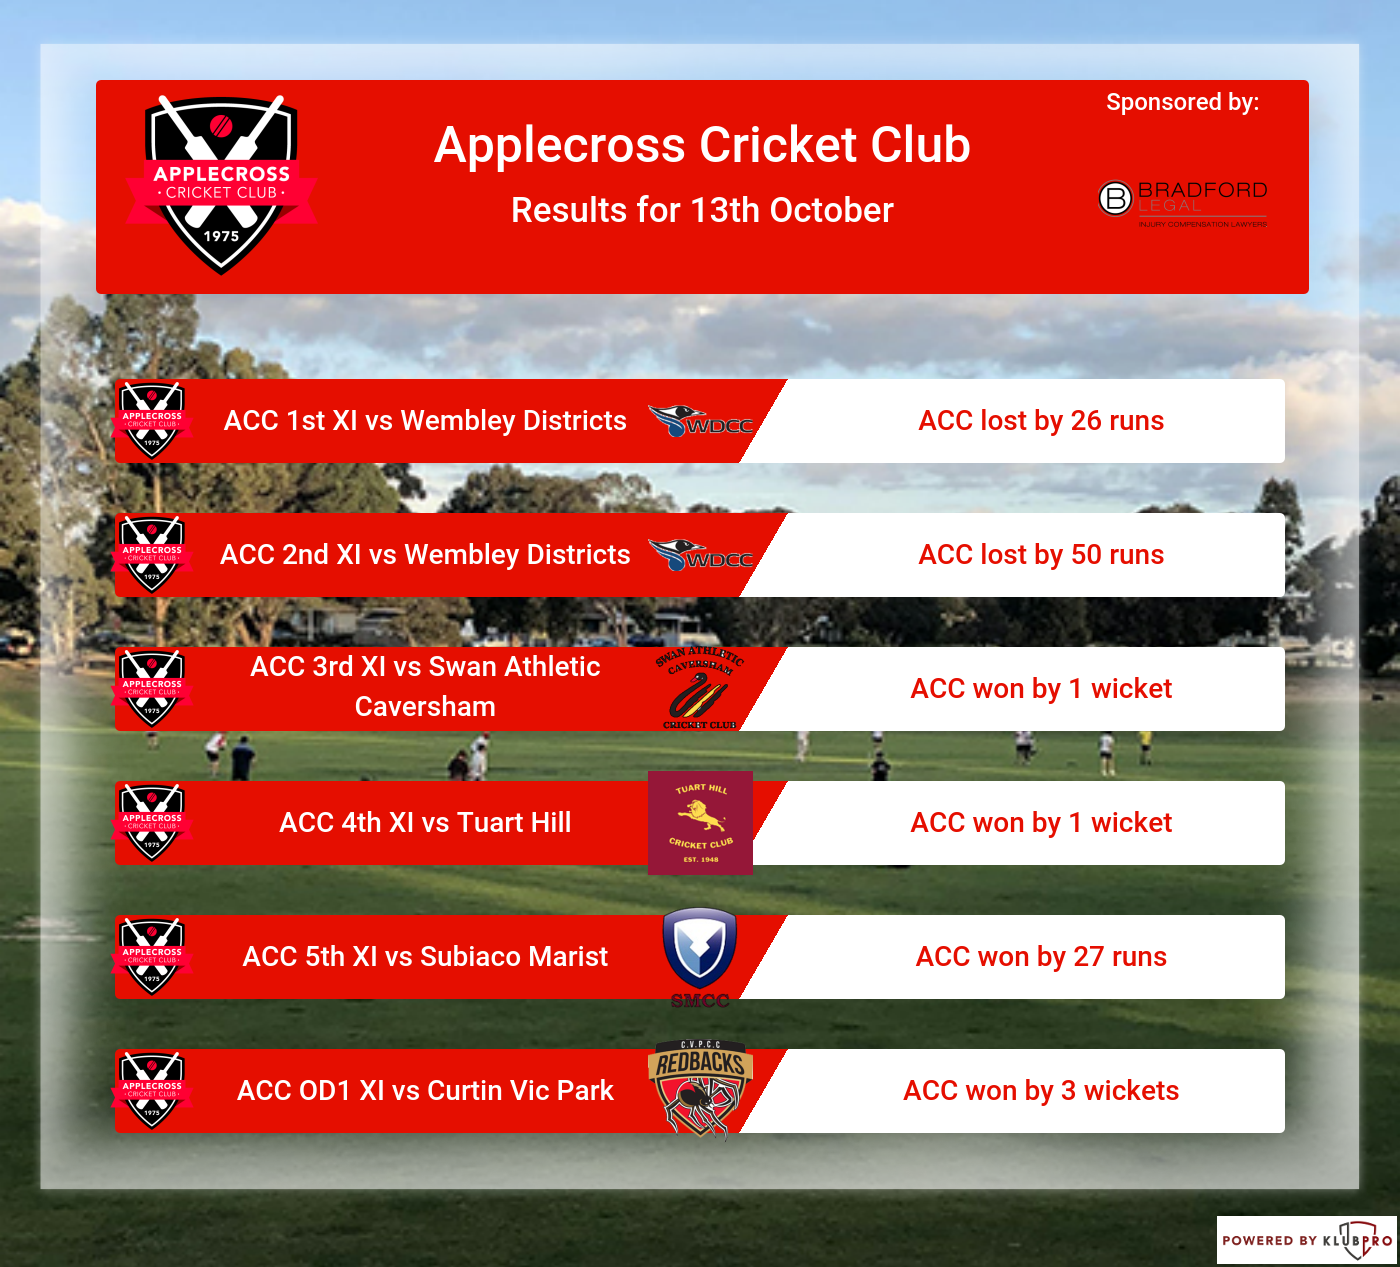 email-club-results-5bcde3125ff83178f61349c5.png